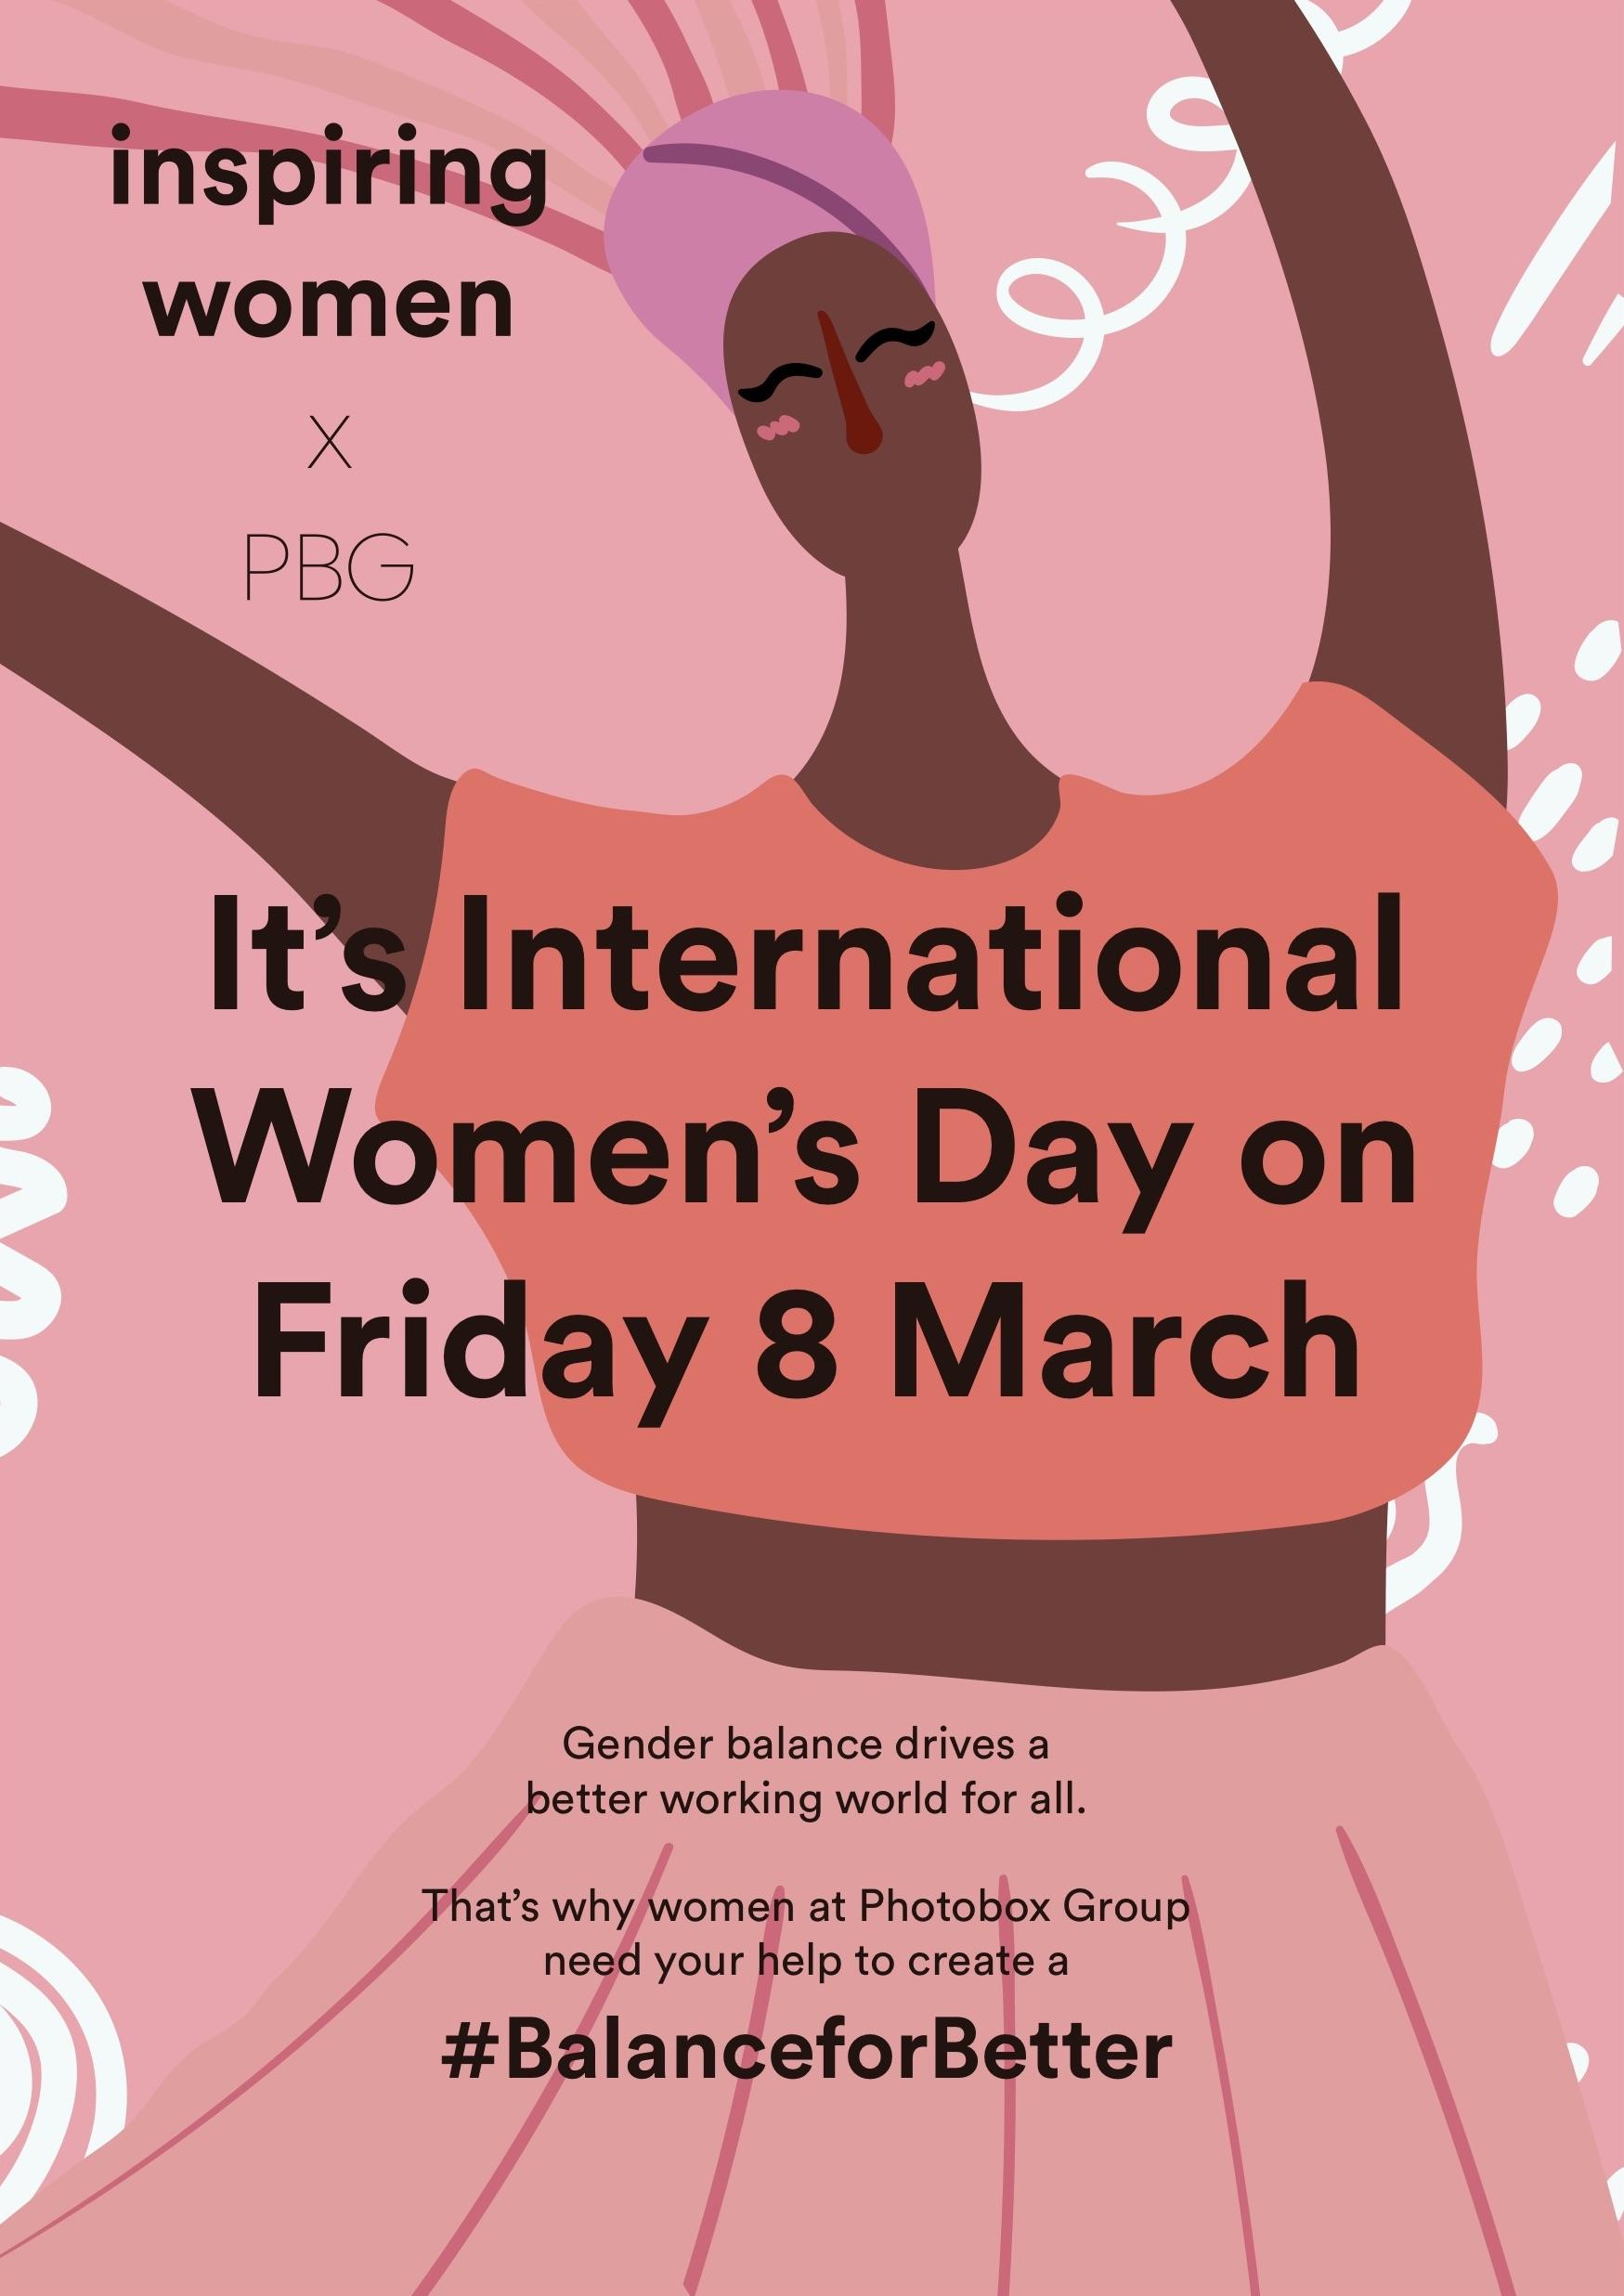 Photobox / Moonpig - International Women's Day